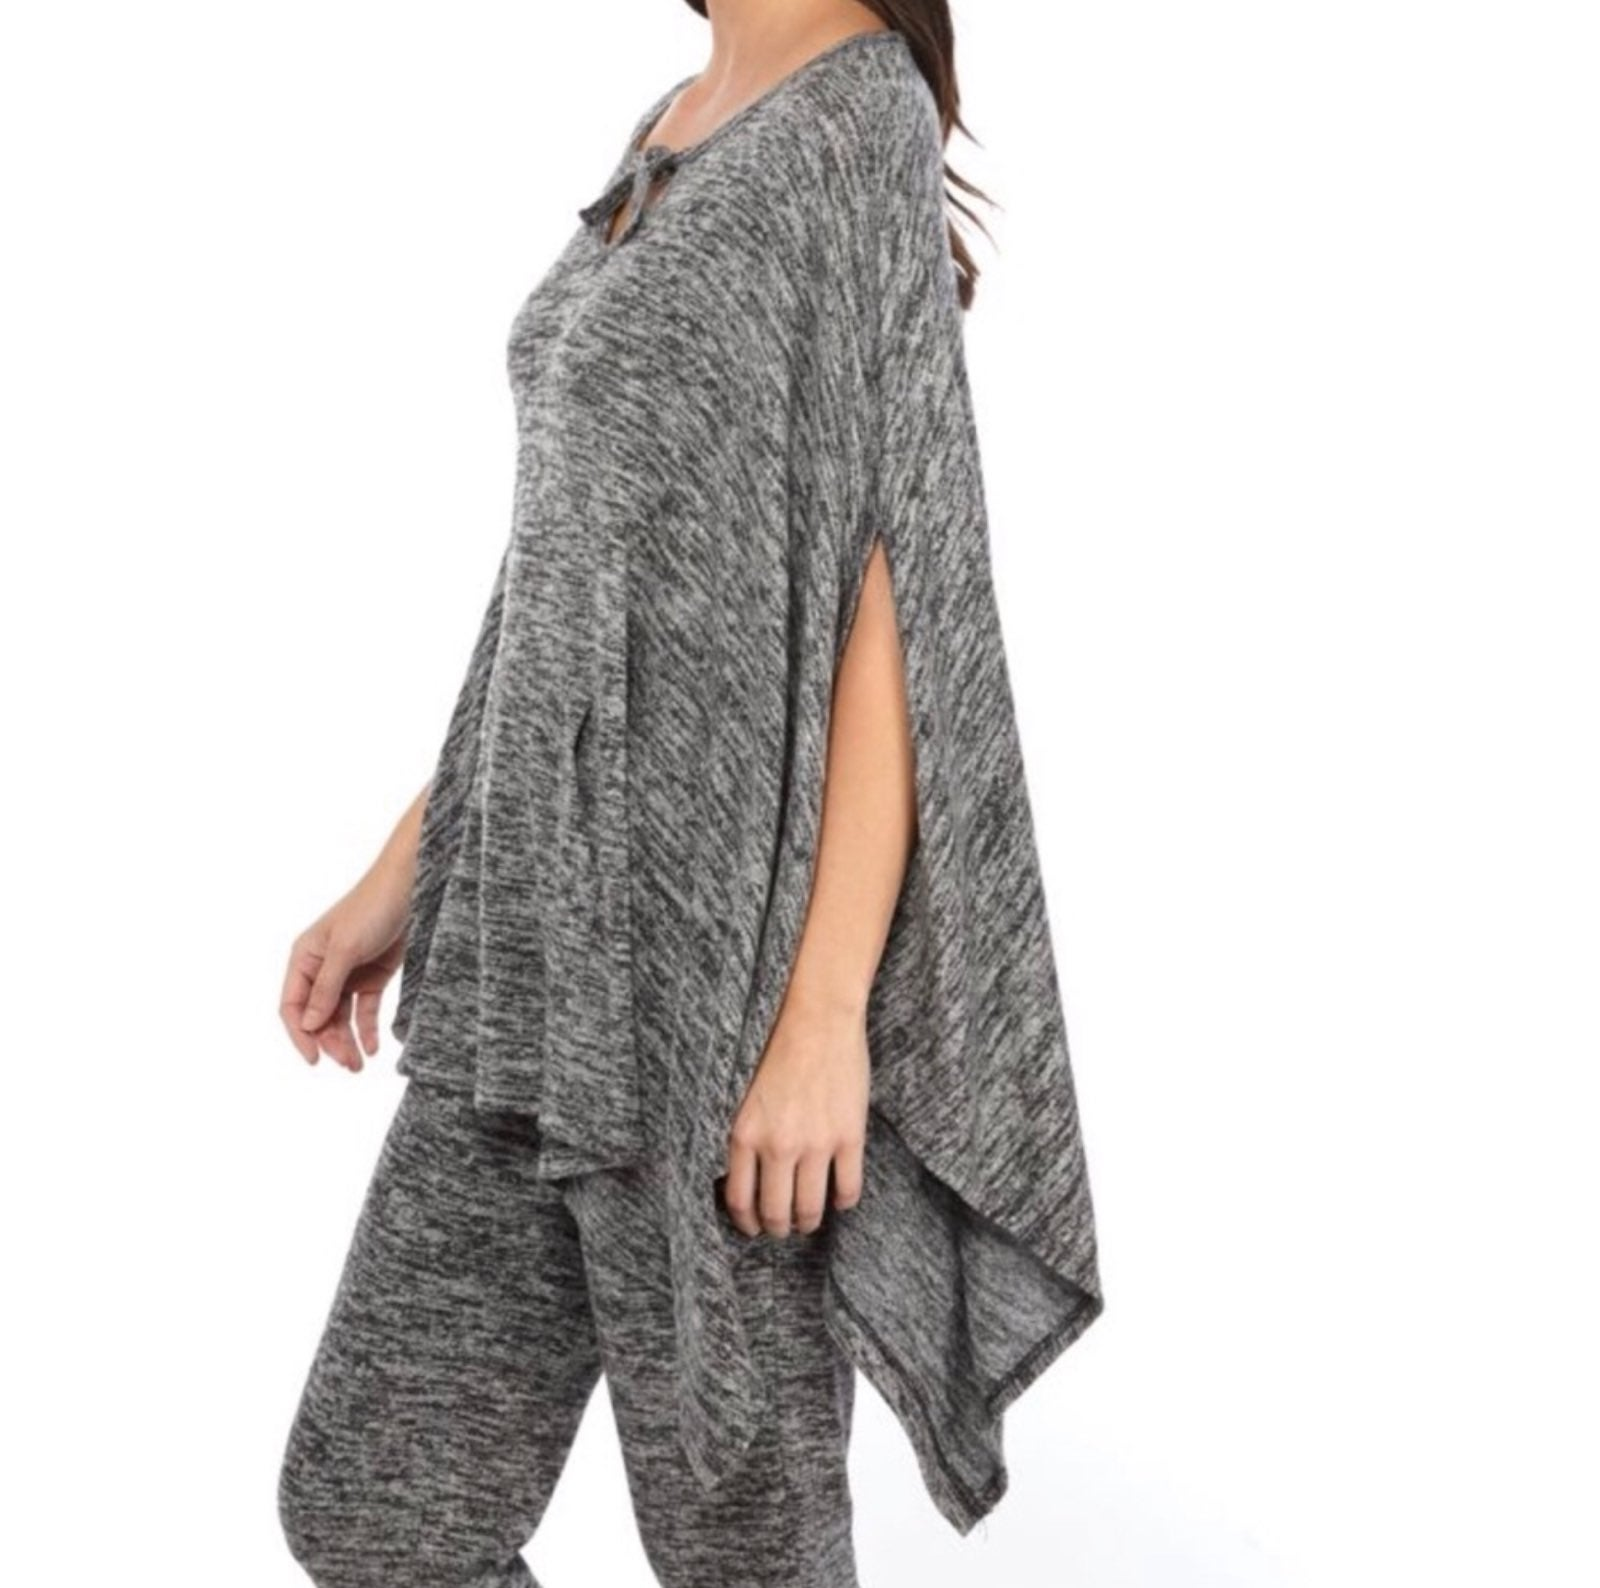 New Directions Hacci Knit Poncho Sweater